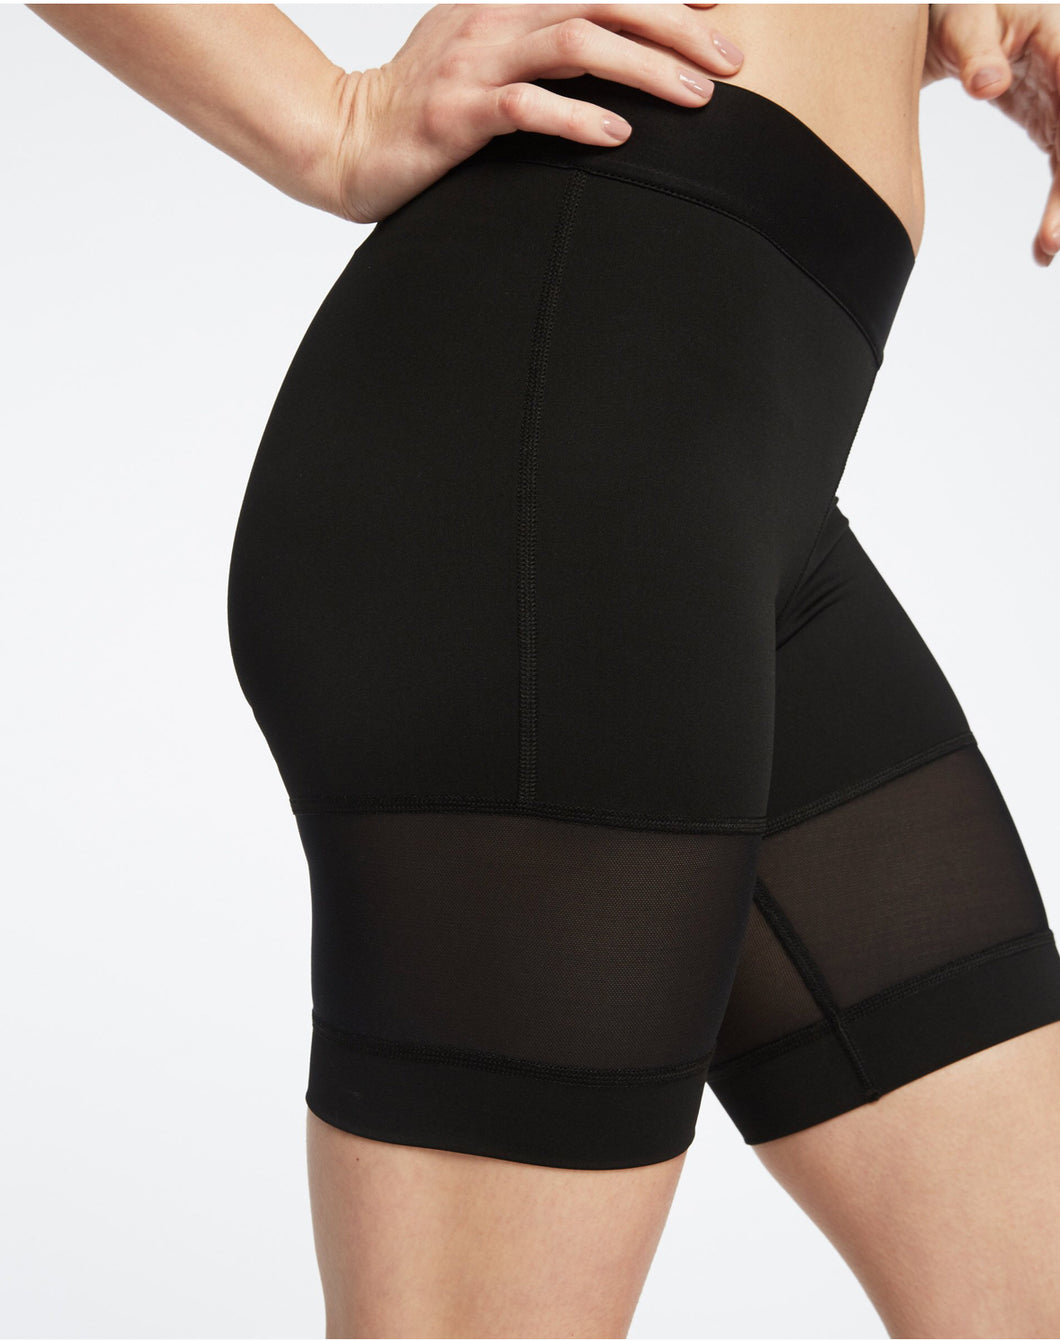 Kinetic Short- Black